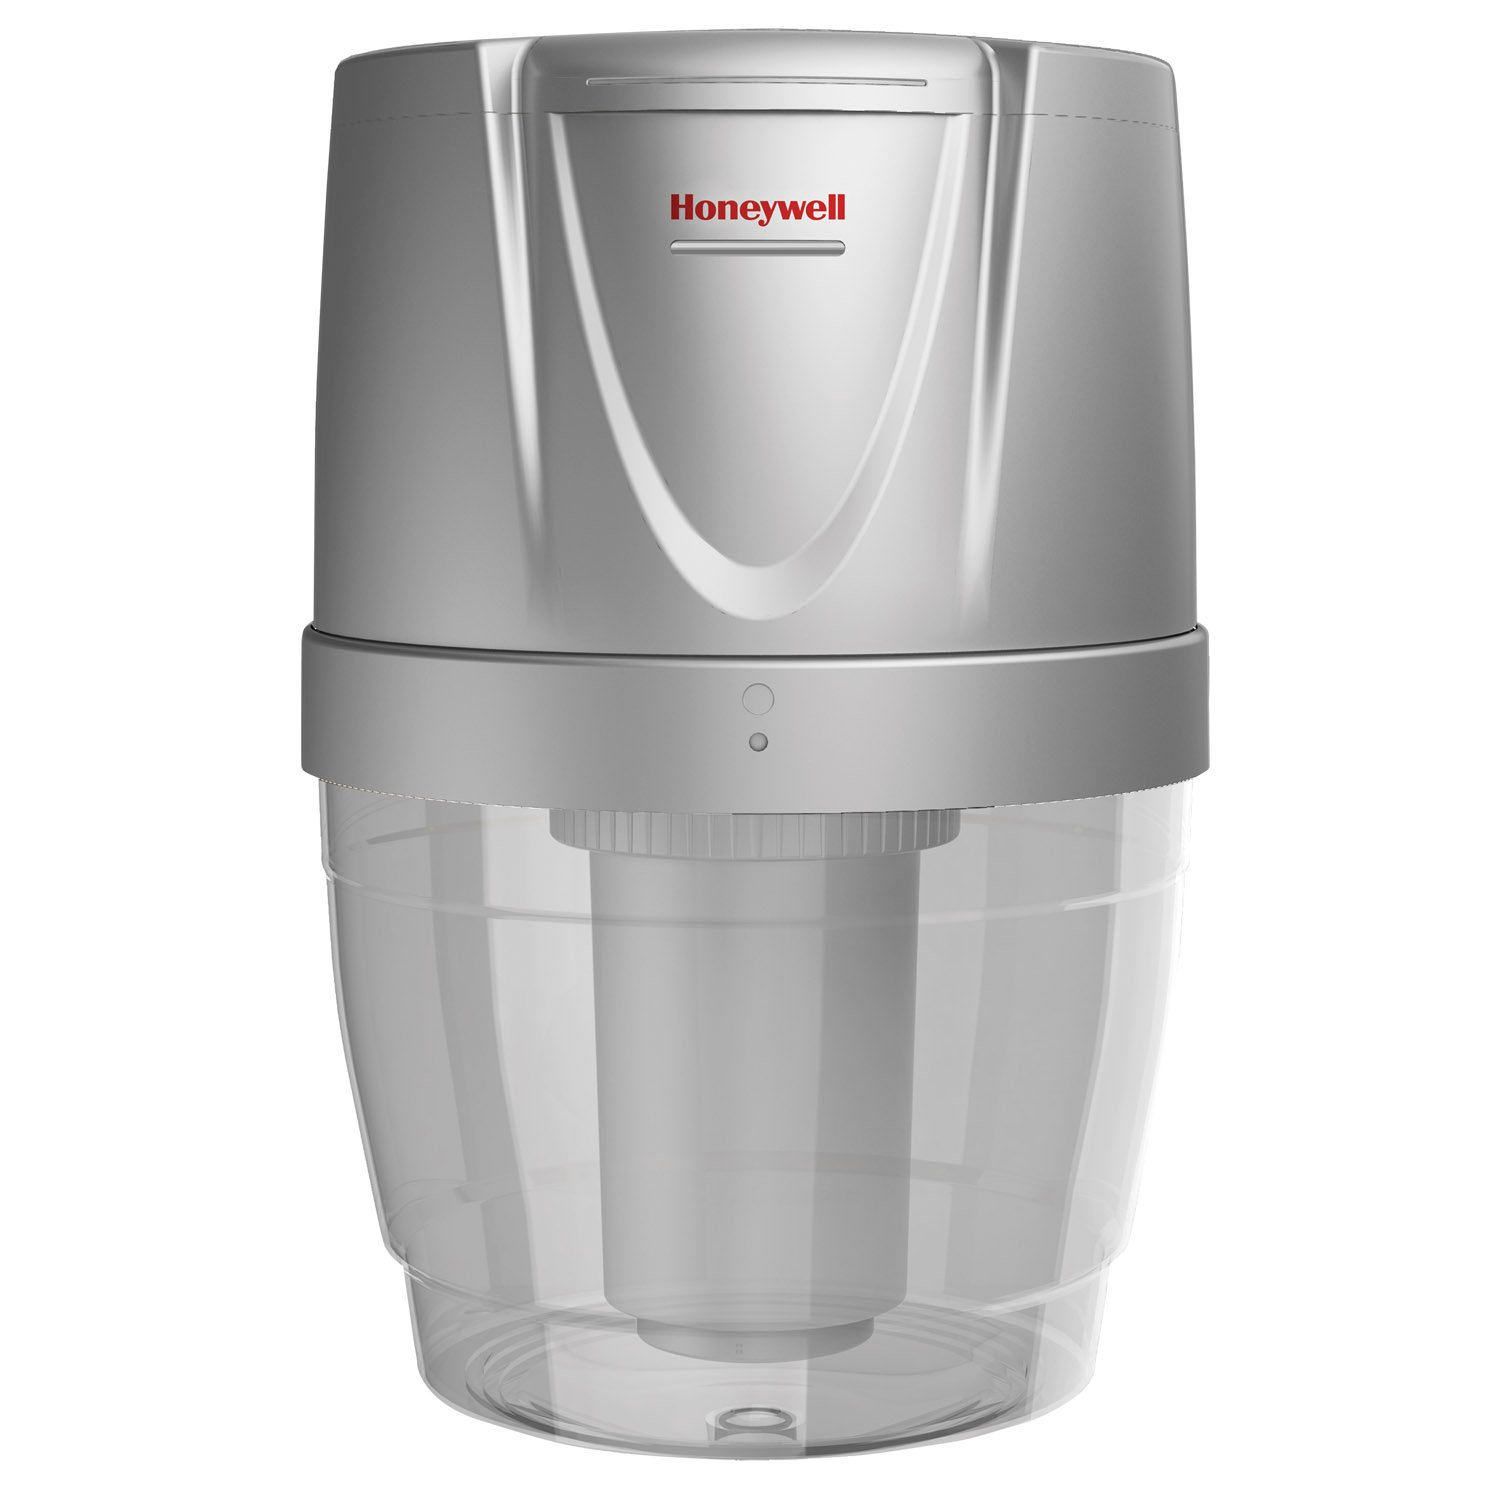 Honeywell HWB101S Filtration System for Water Dispensers, Reduces Chlorine and Particulates to help improve water taste, Avoid water bottles heavy lifting, spills and storage, Silver